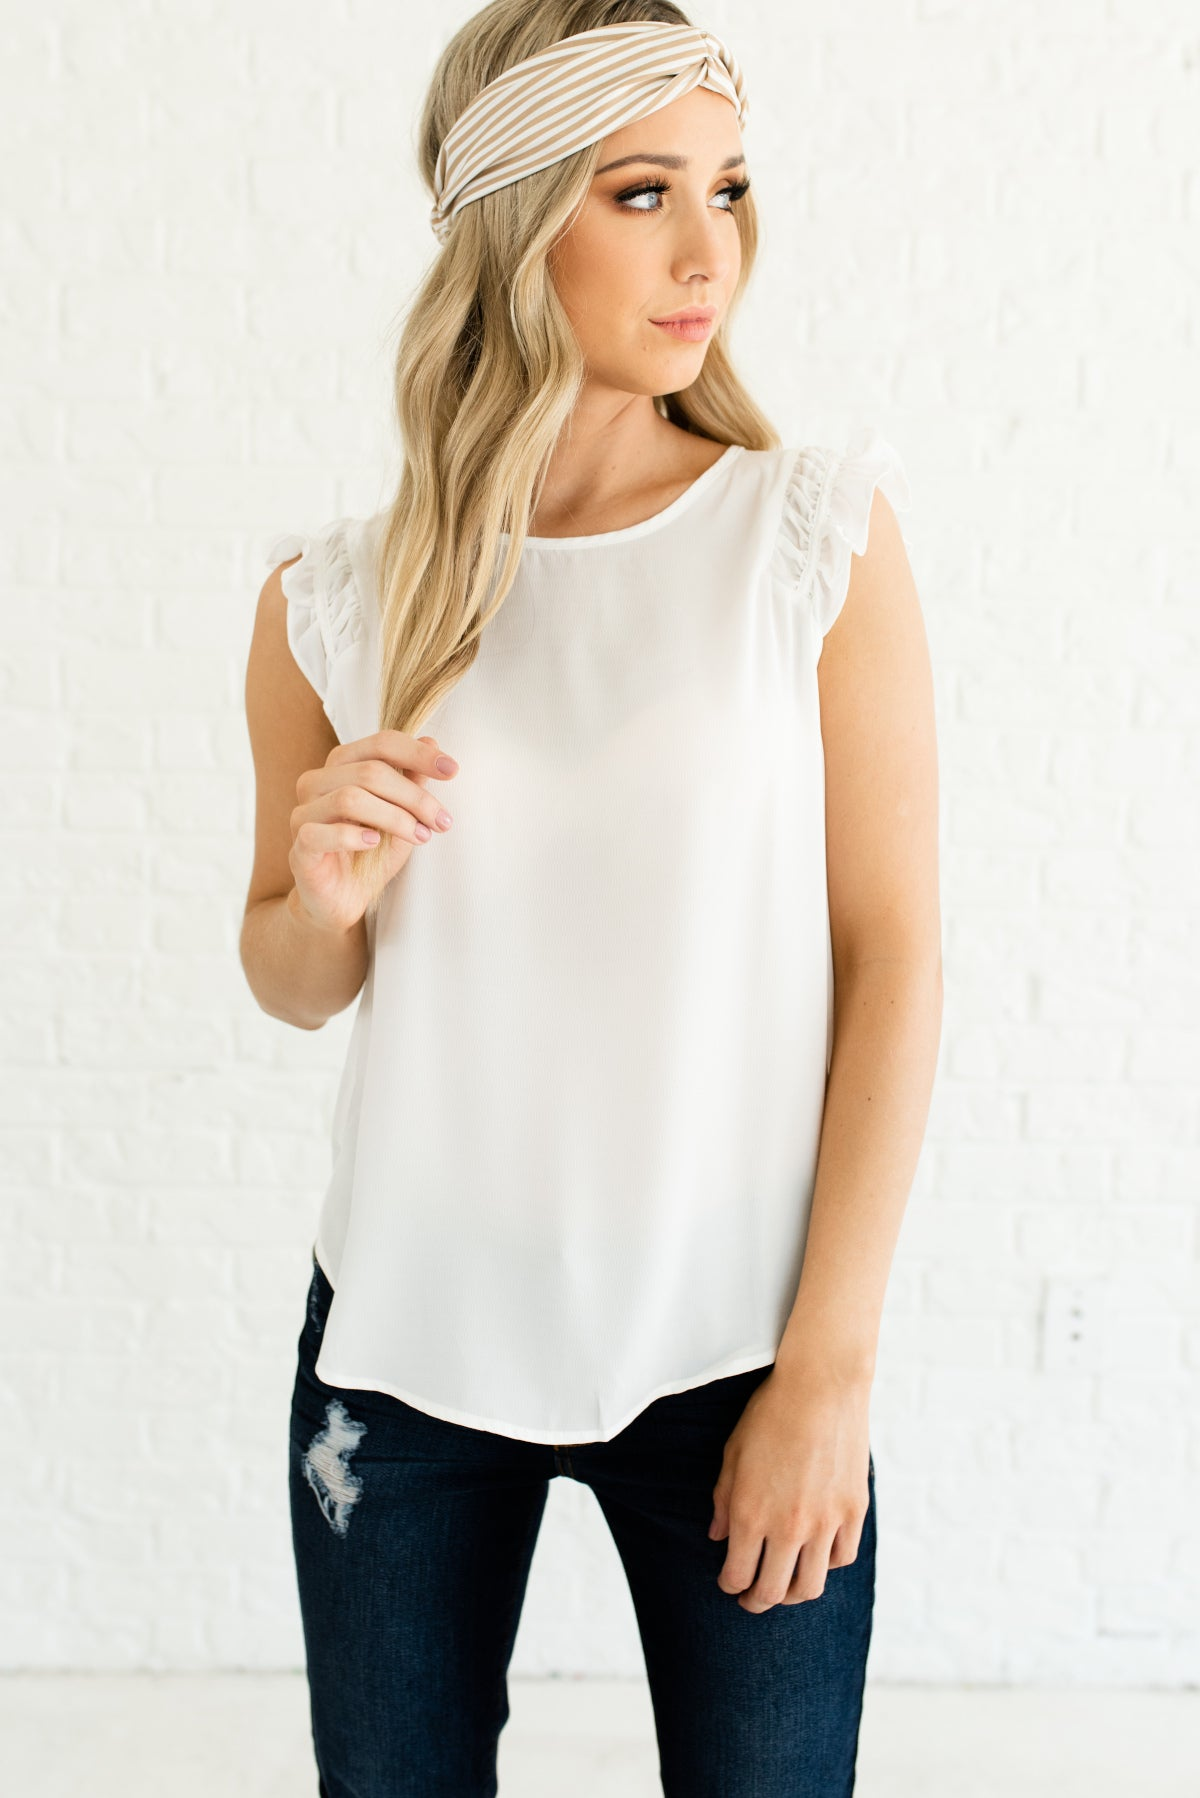 White Ruffled Sleeves Boutique Blouses for Women